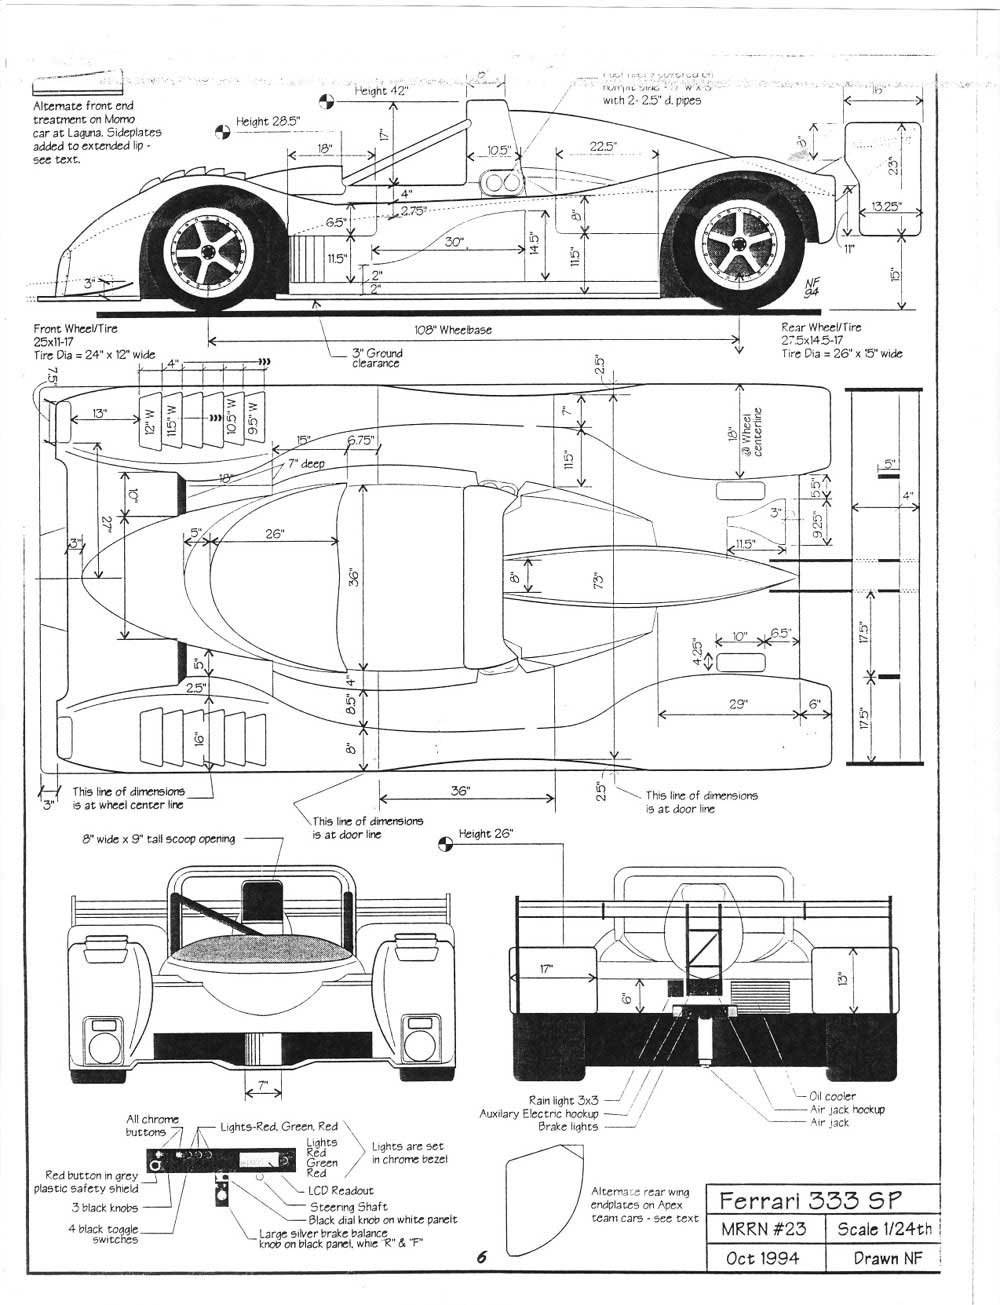 diy make it yourself for  50k  ferrari 333sp 1994  its not that hard  find any donor engine